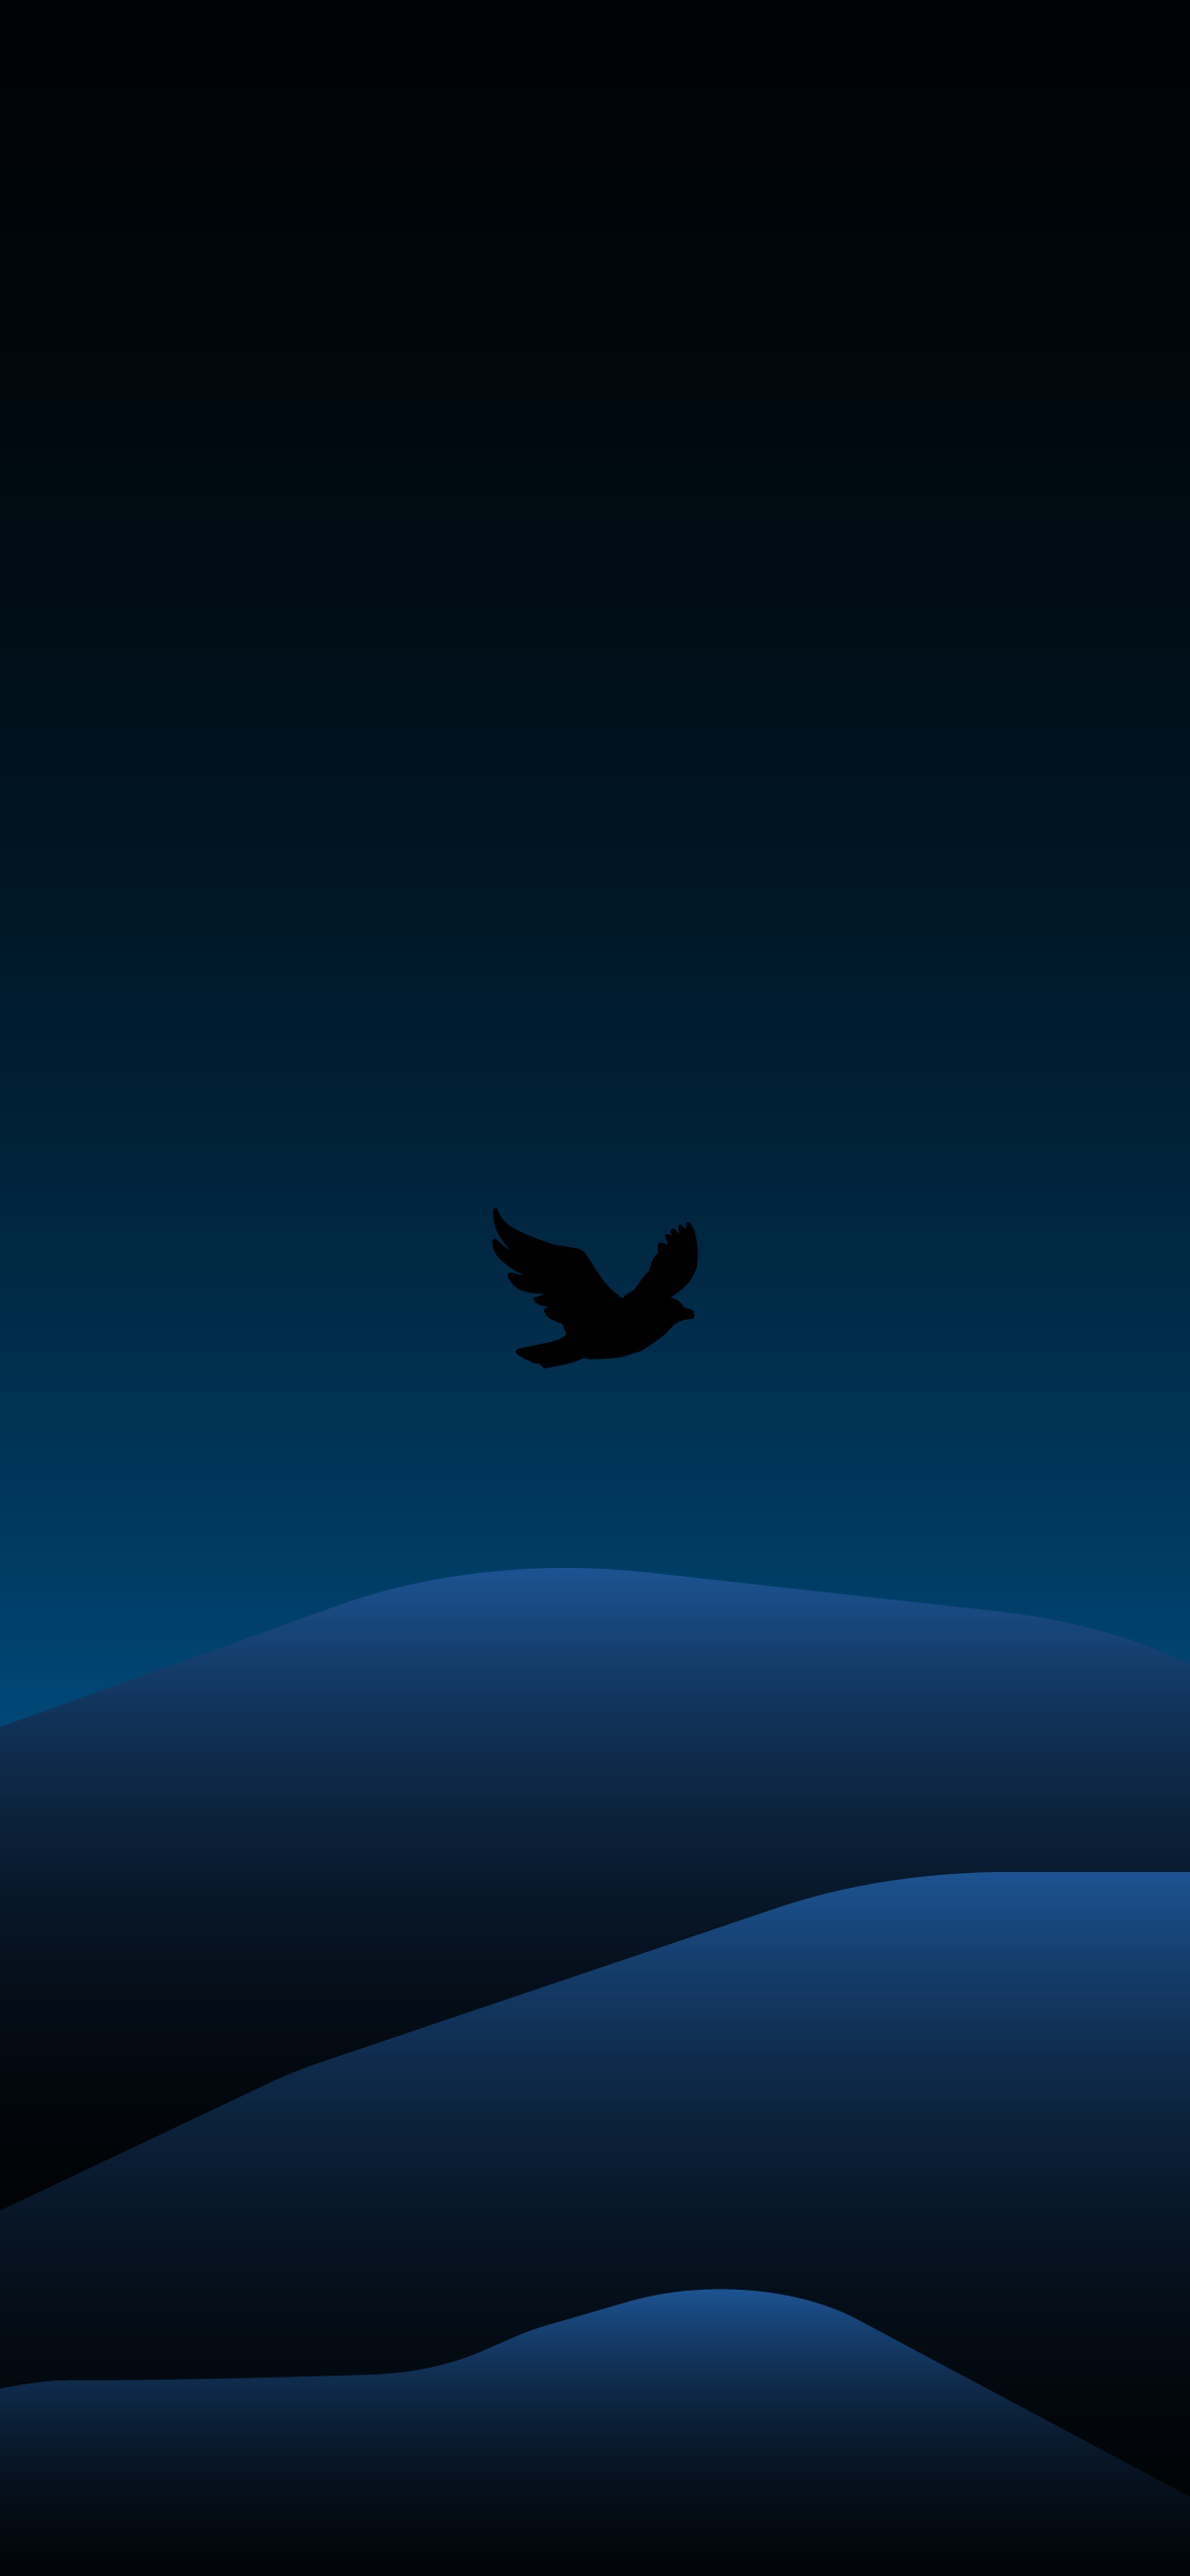 beautiful minimalistic and cool wallpaper iphone 4k